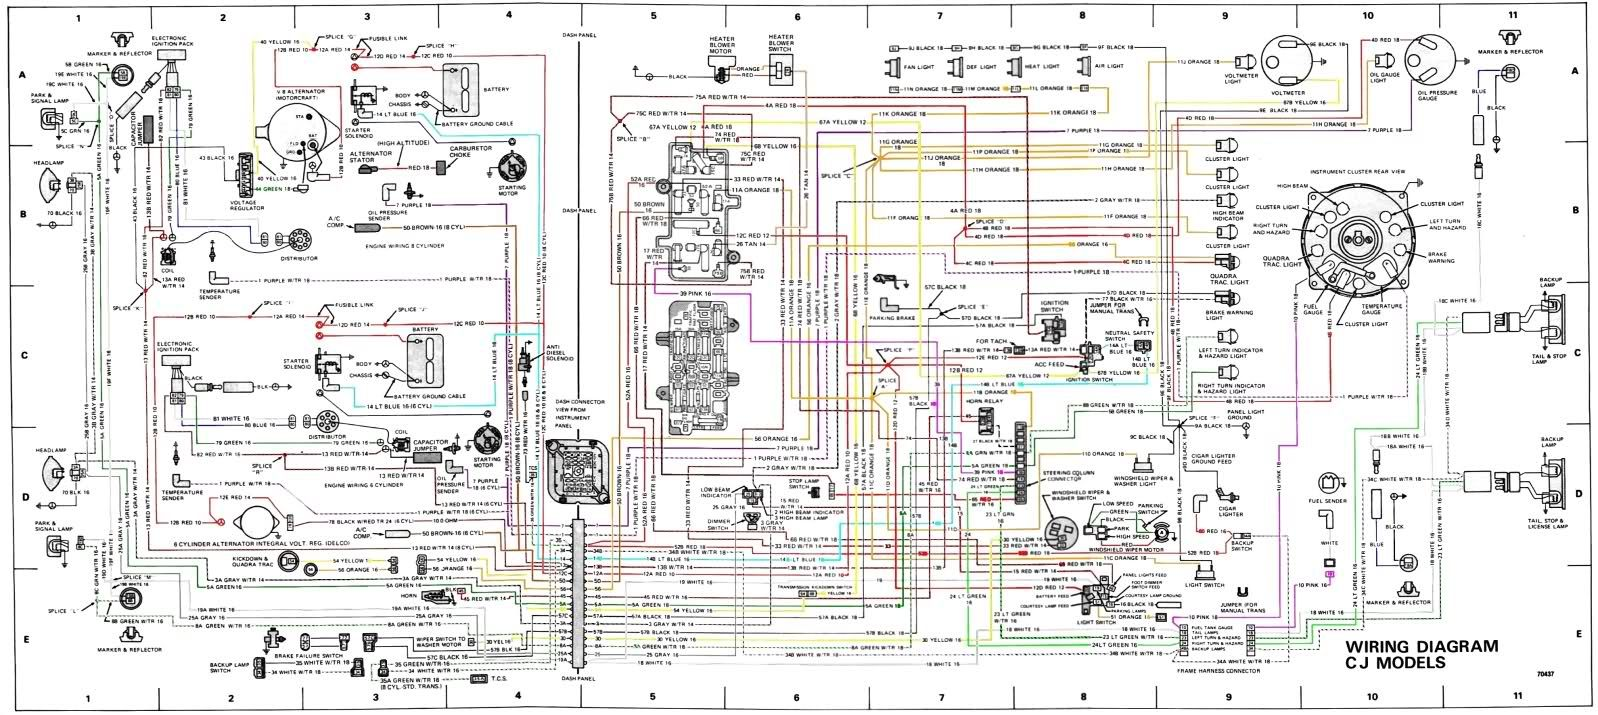 Generac Xp8000e Wiring Diagram | Wiring Liry on